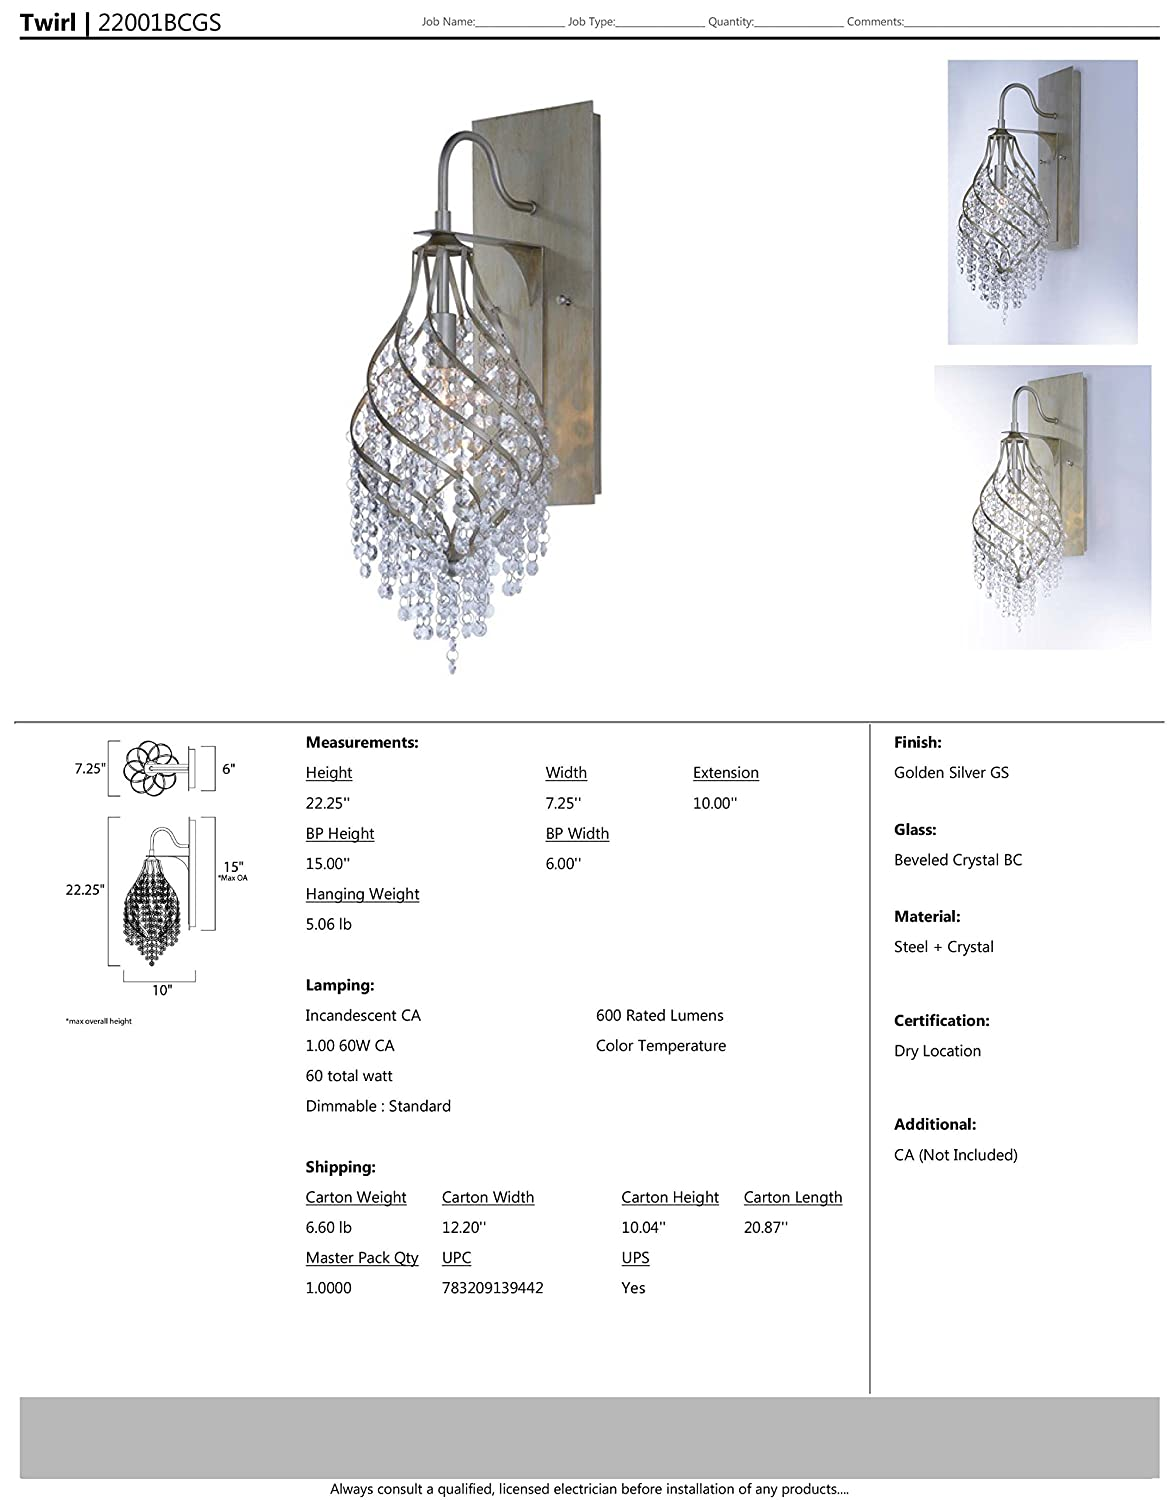 Standard Triac//Lutron or Leviton Dimmable Beveled Crystal Glass Dry Safety Rating 3000K Color Temp CA Incandescent Incandescent Bulb 11W Max. Concrete Shade Material 710 Rated Lumens Maxim 22001BCGS Twirl 1-Light Wall Sconce Golden Silver Finish